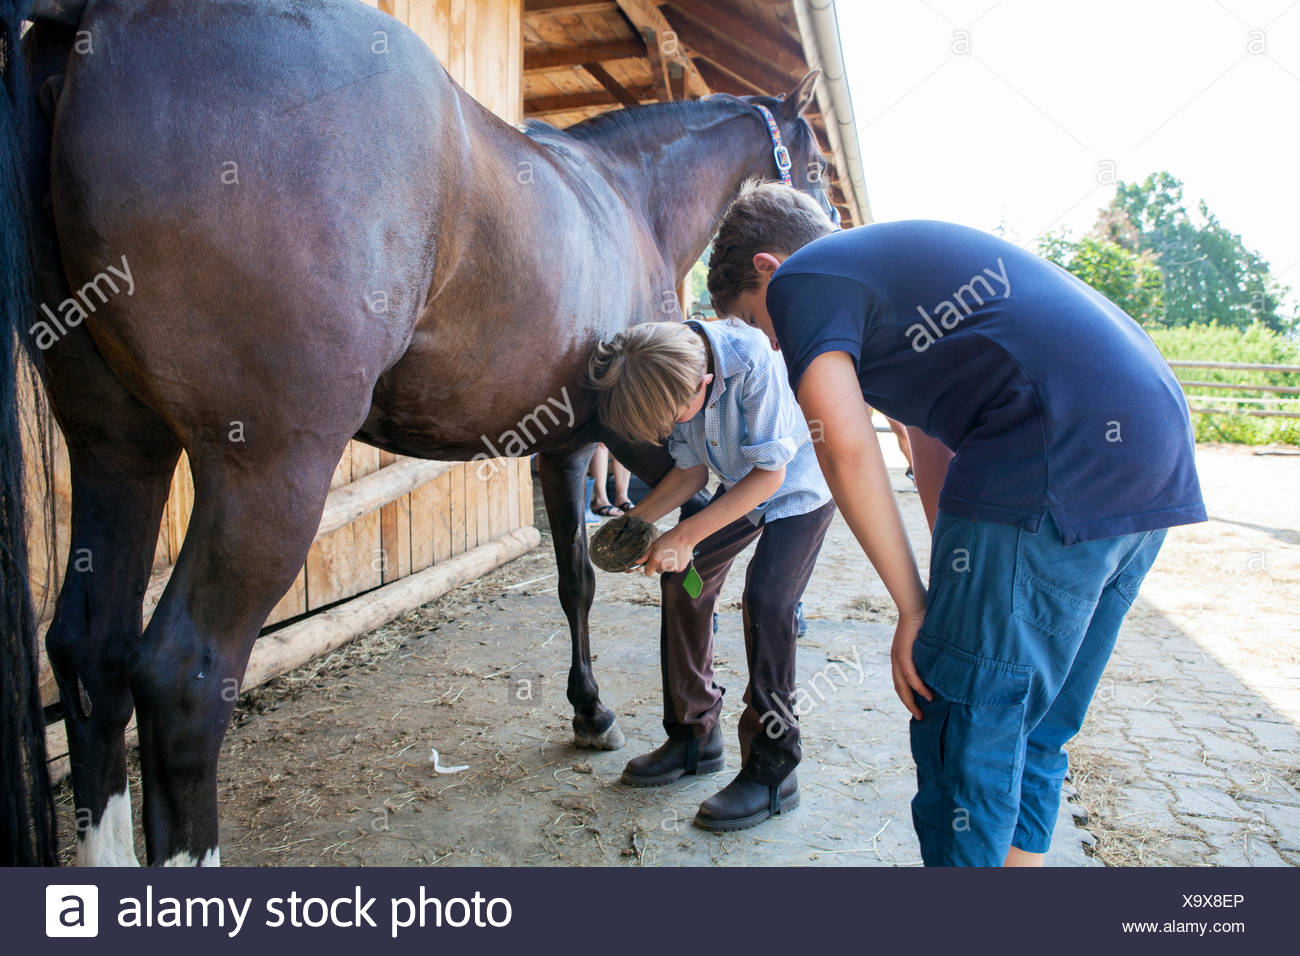 Boys cleaning hoof of a horse - Stock Image